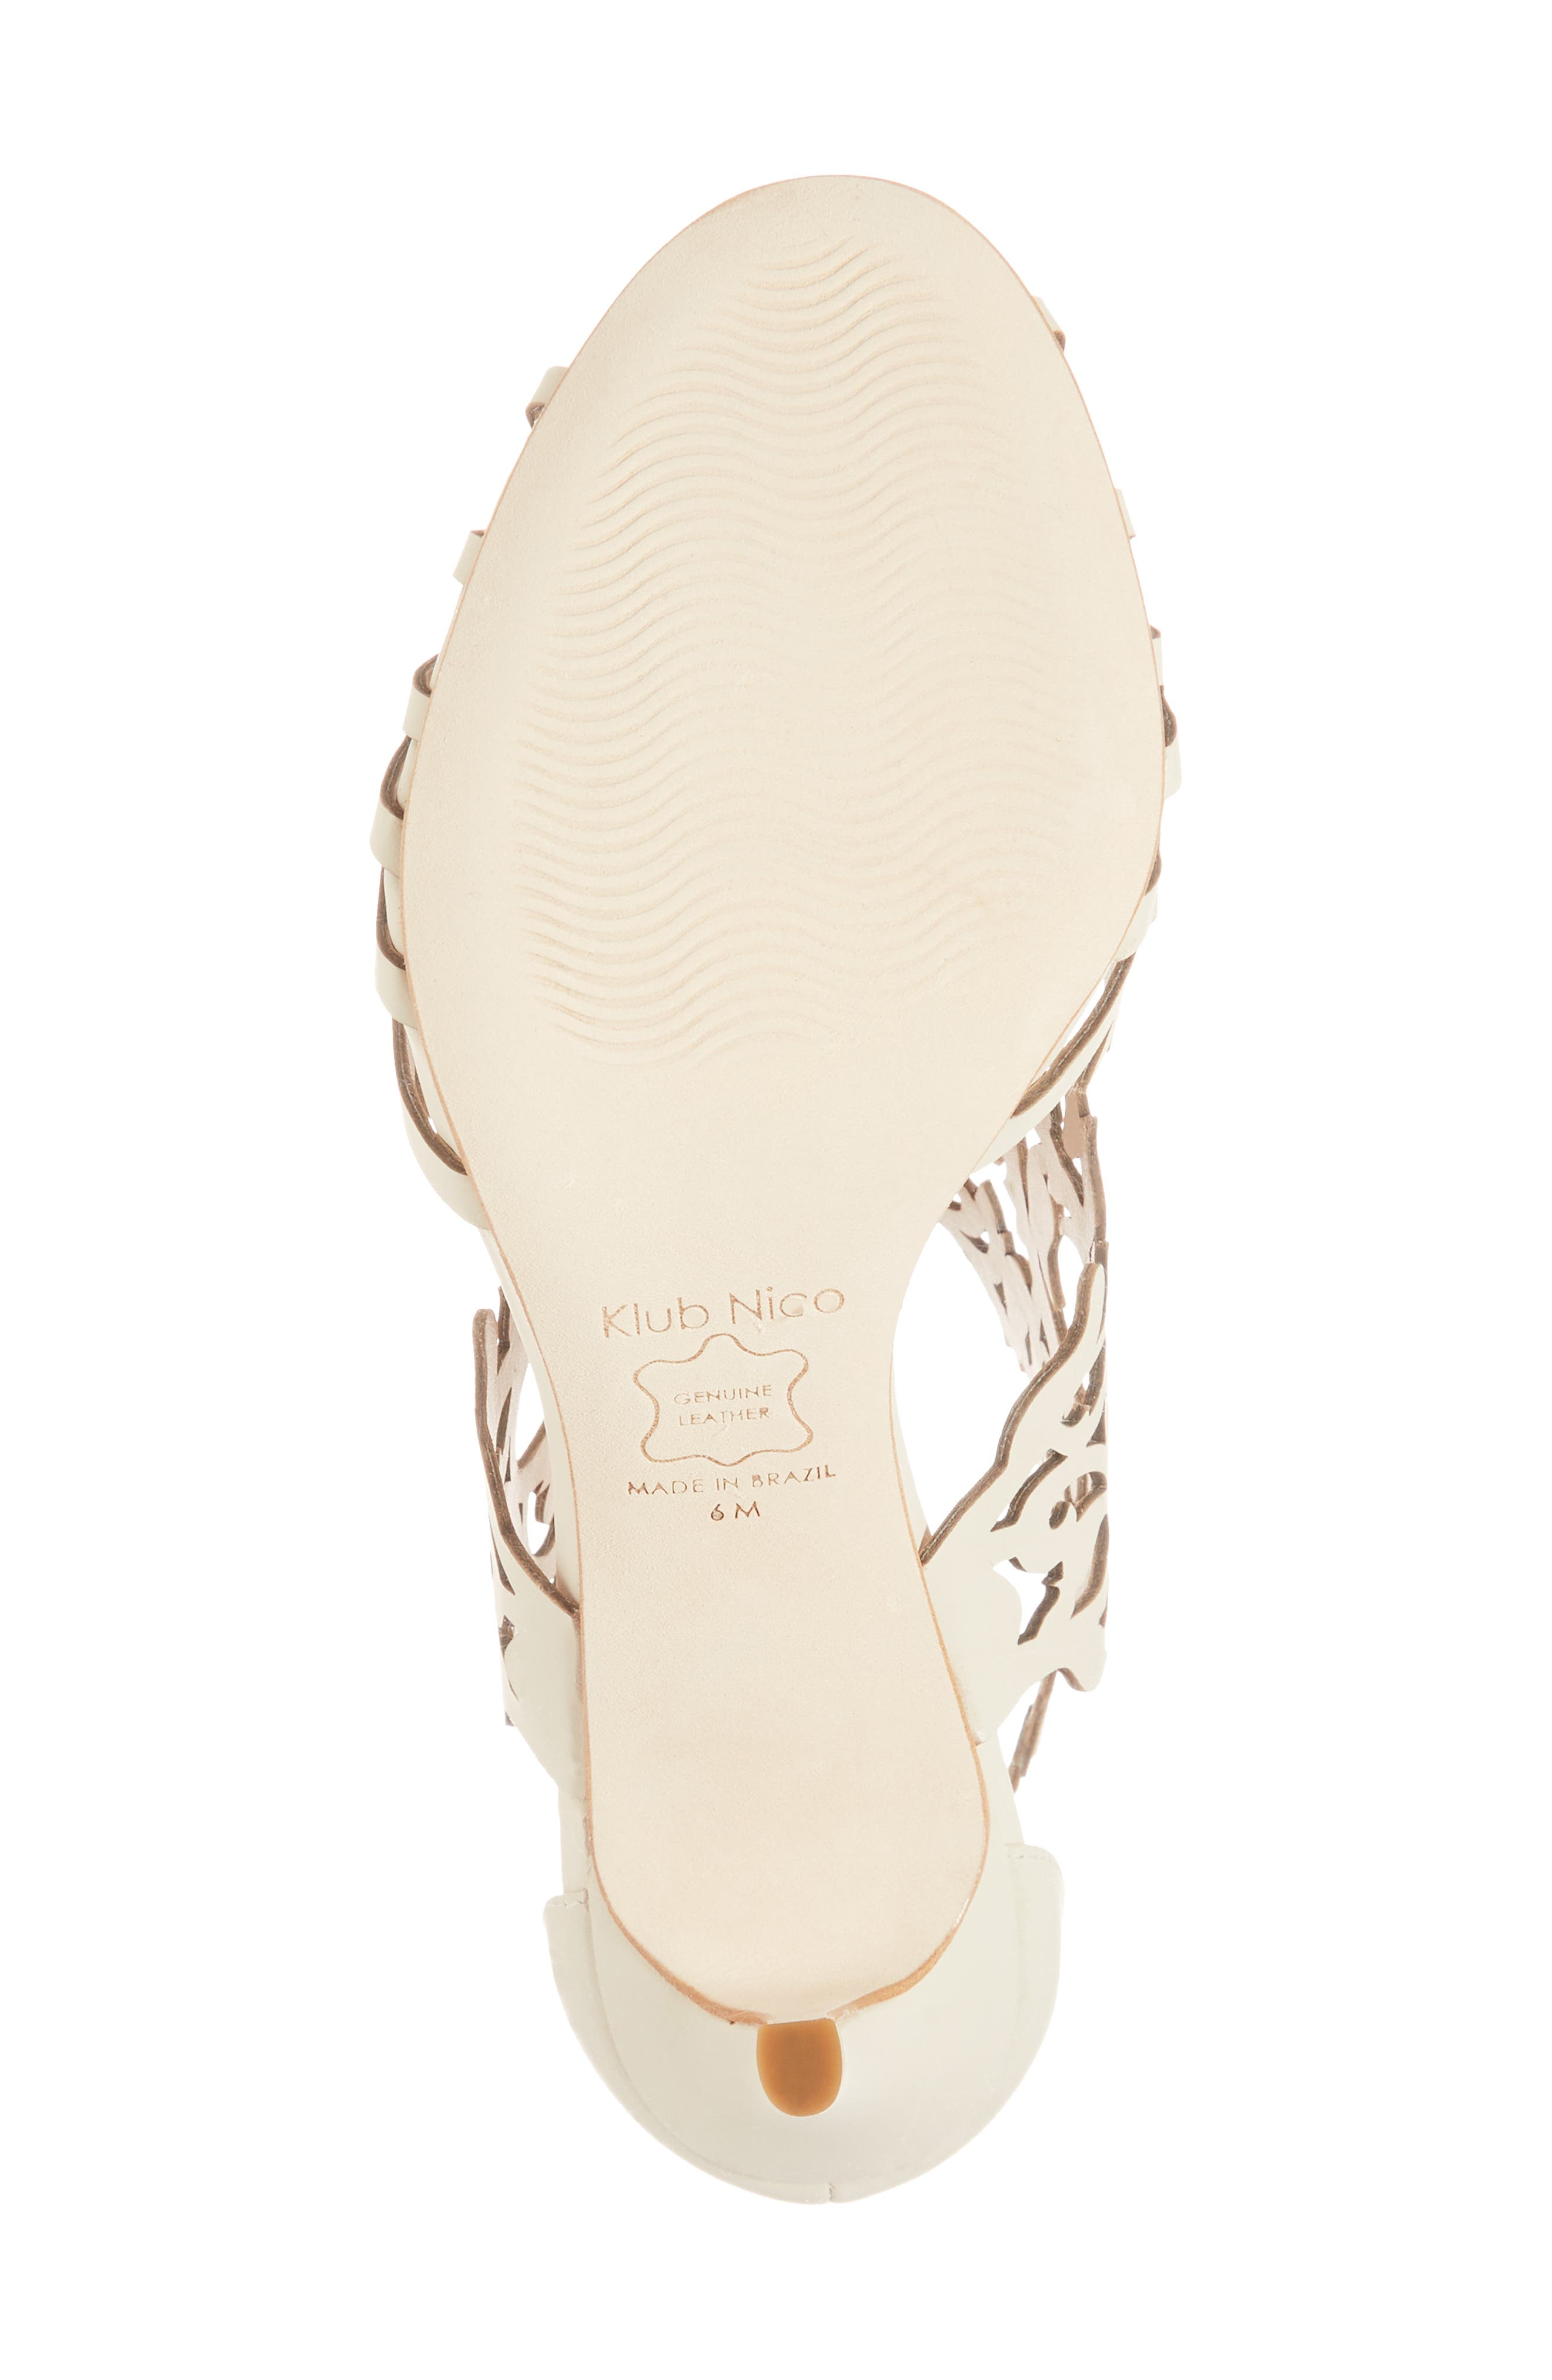 Marcela 3 Laser Cutout Sandal,                             Alternate thumbnail 6, color,                             Ivory Leather